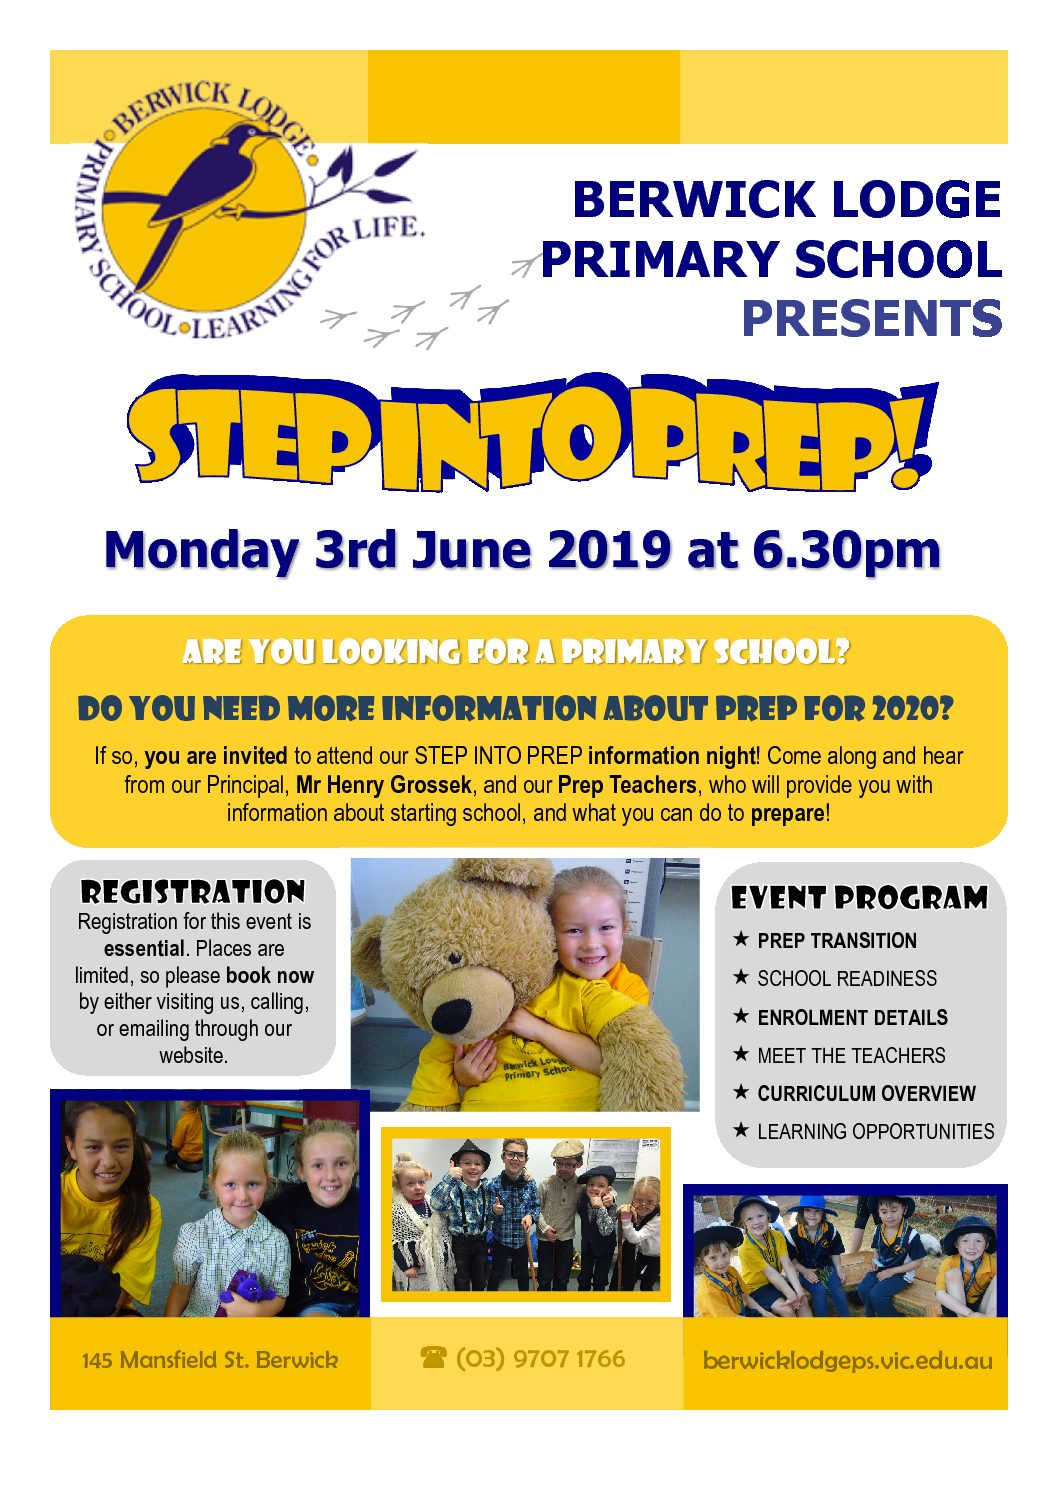 Step into Prep evening